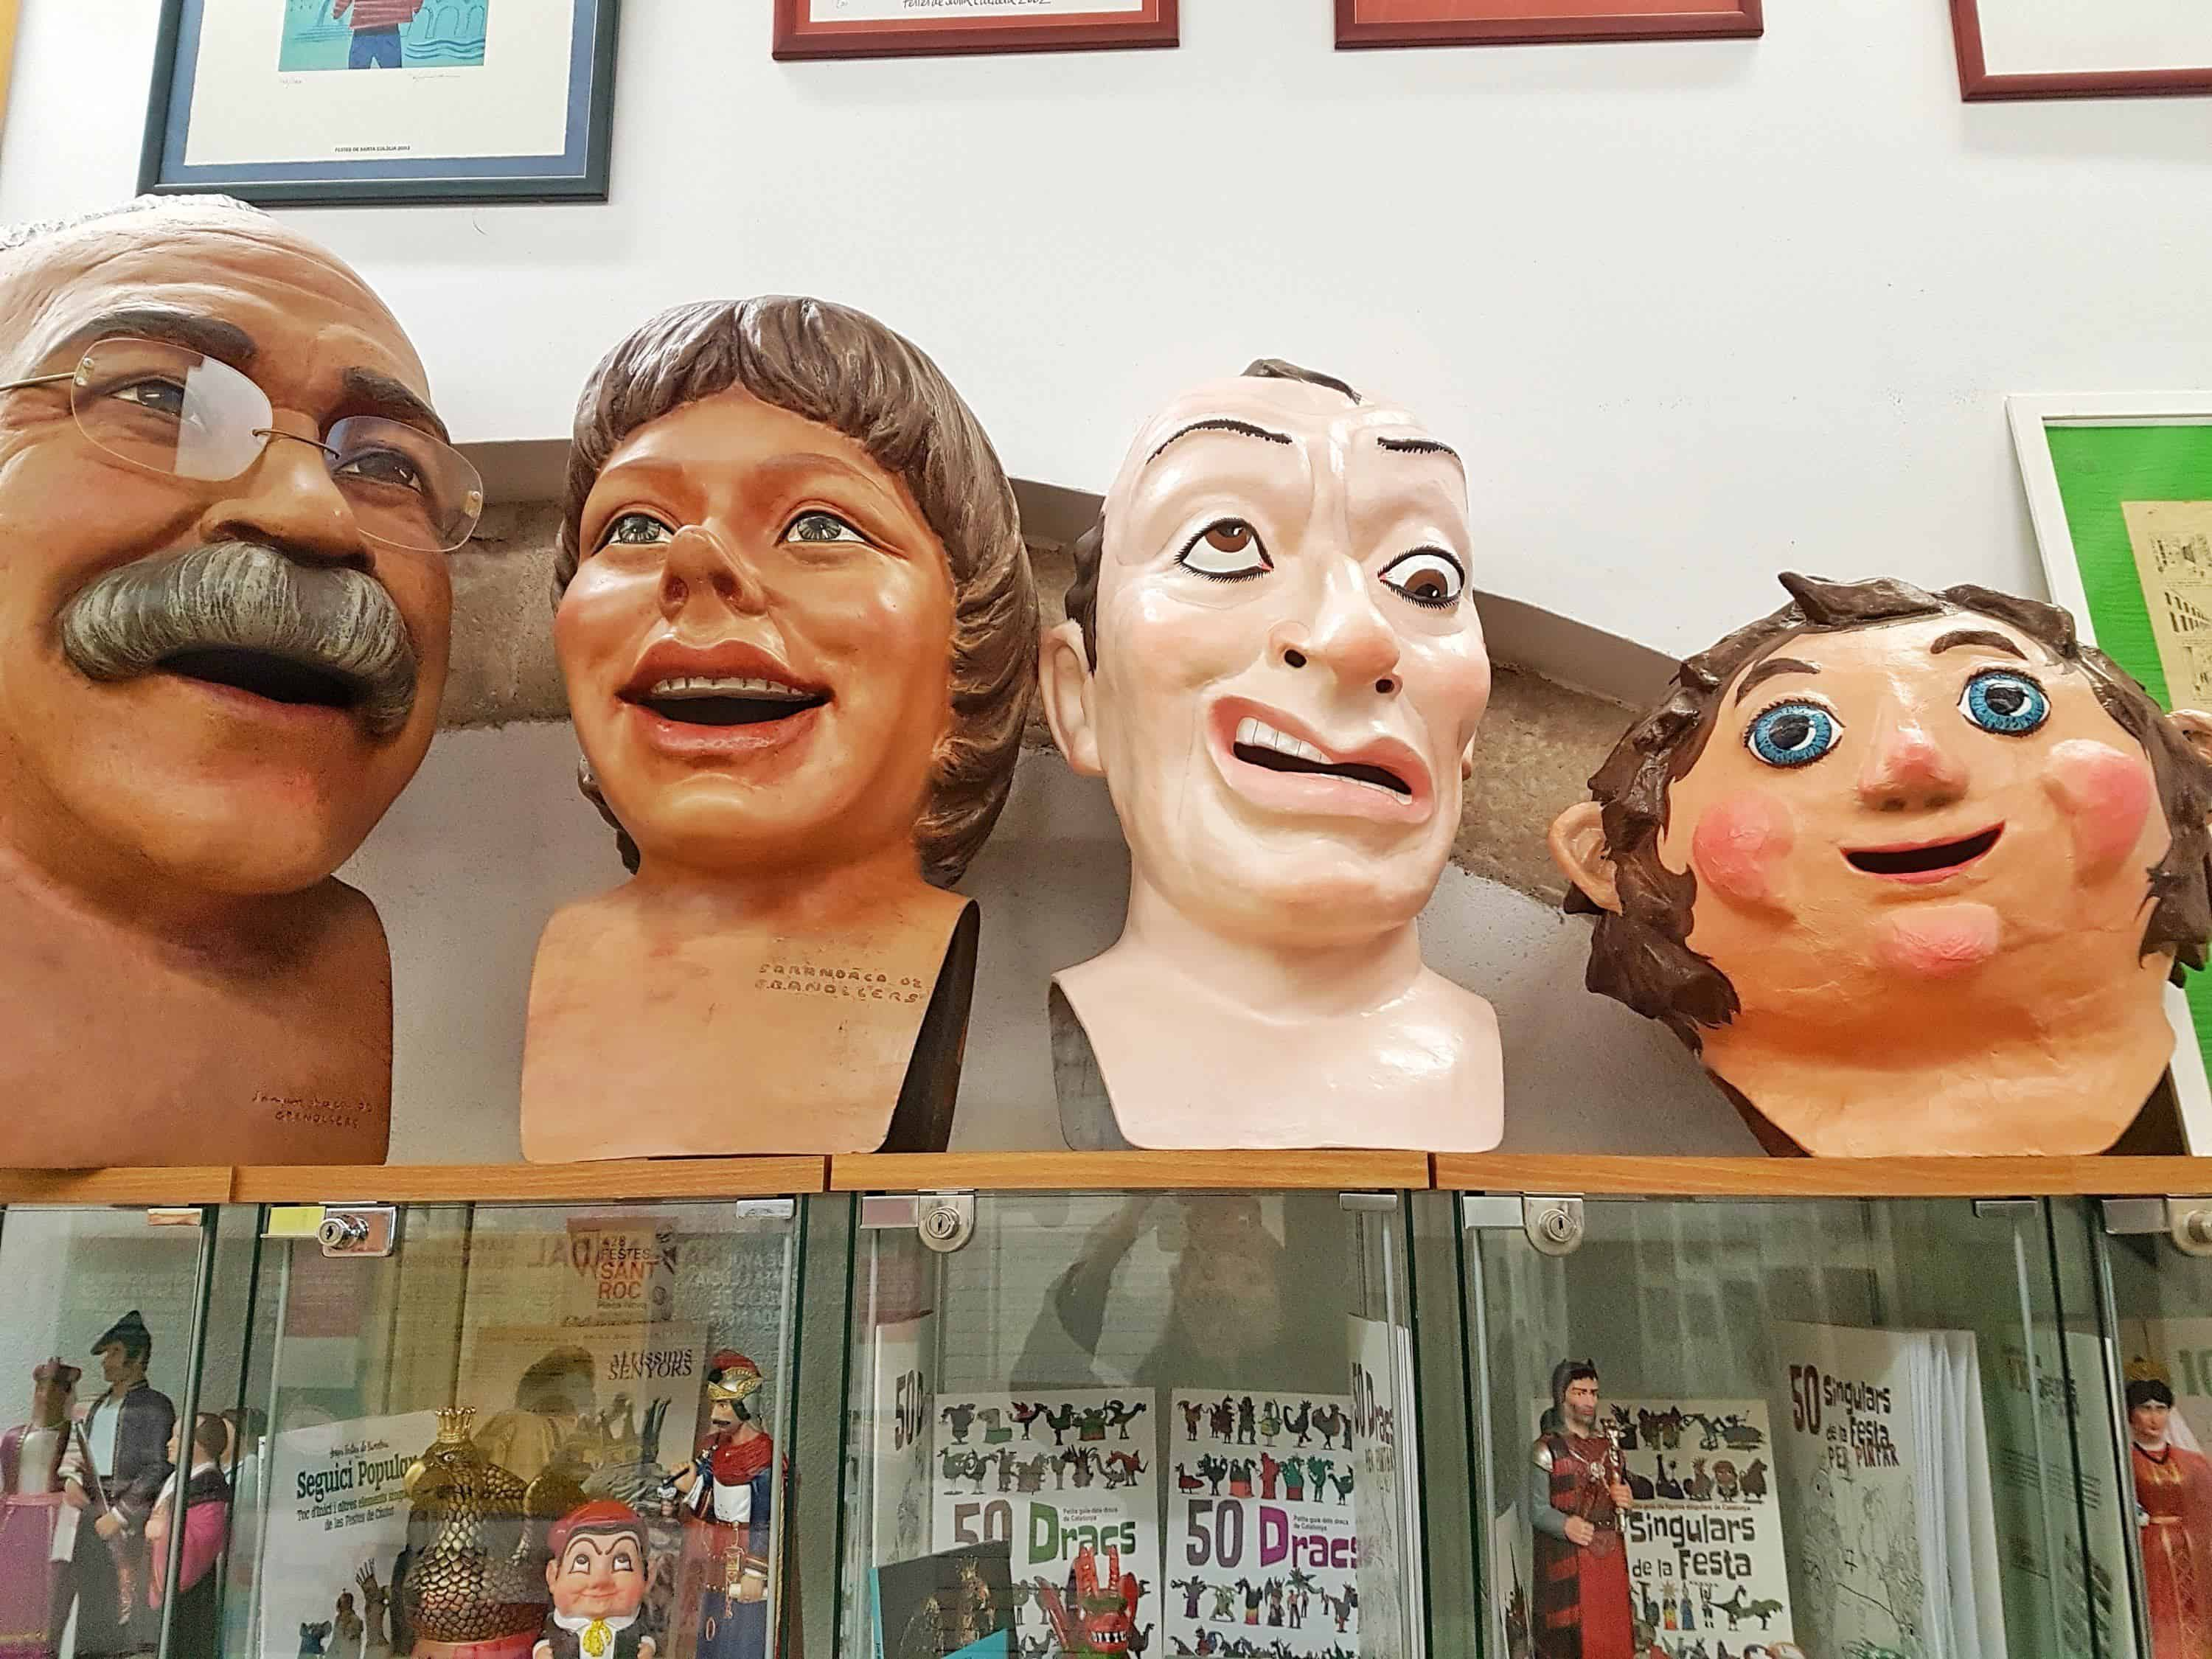 La Casa dels Entremesos, Barcelona. A museum of giants, puppets, and beasts in Catalan culture.